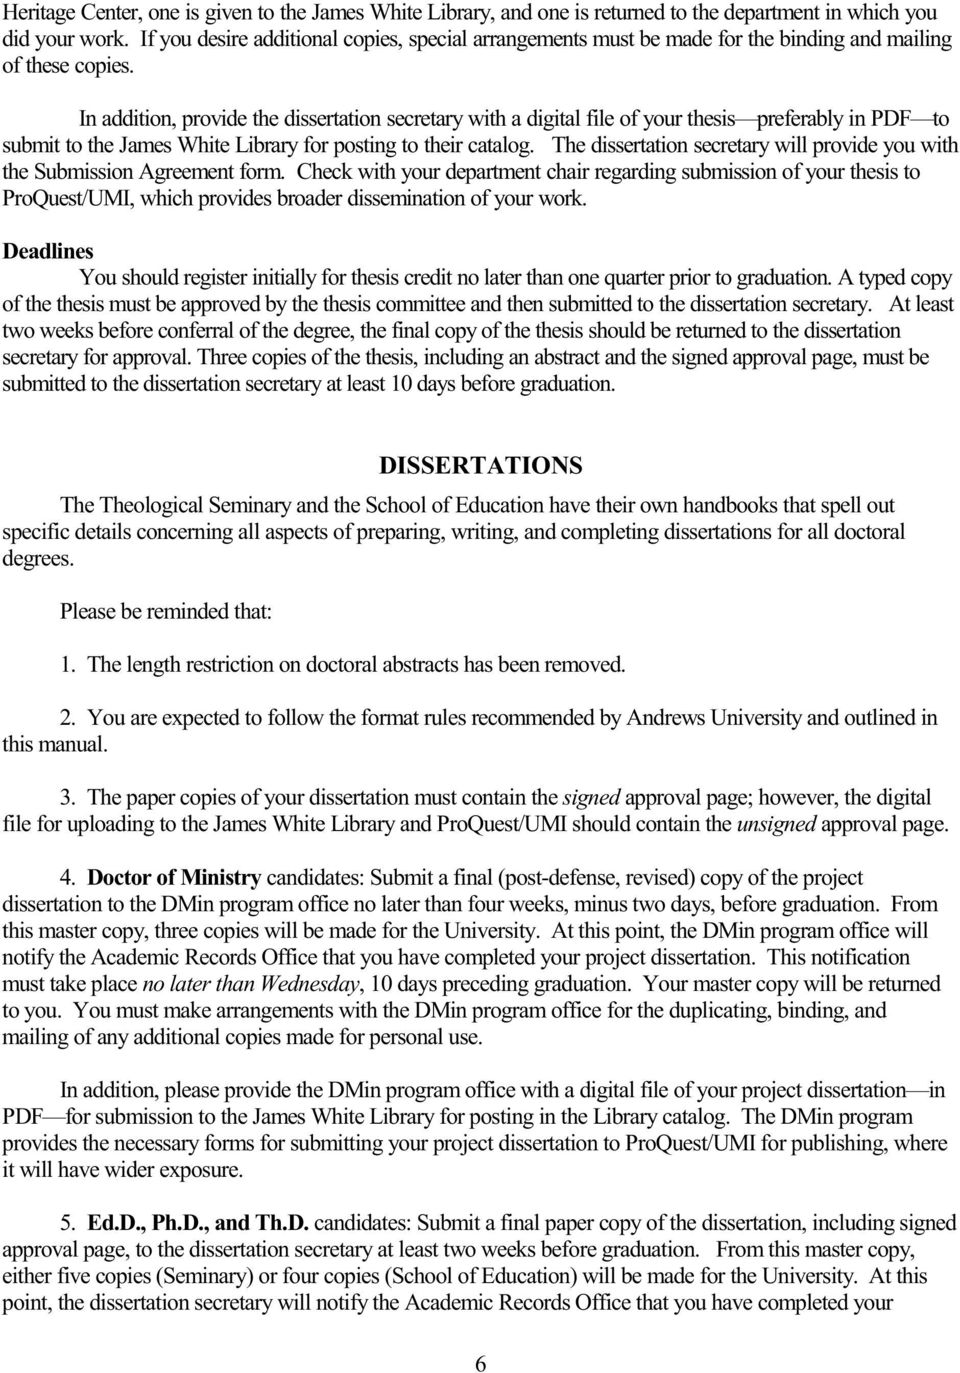 phd thesis database umi Do you want to submit your thesis to the umi or proquest dissertation database then, guidelines on how to make a digital manuscript for the umi thesis database will be right in time for you phd thesis political science thesis secrets of thesis writing.